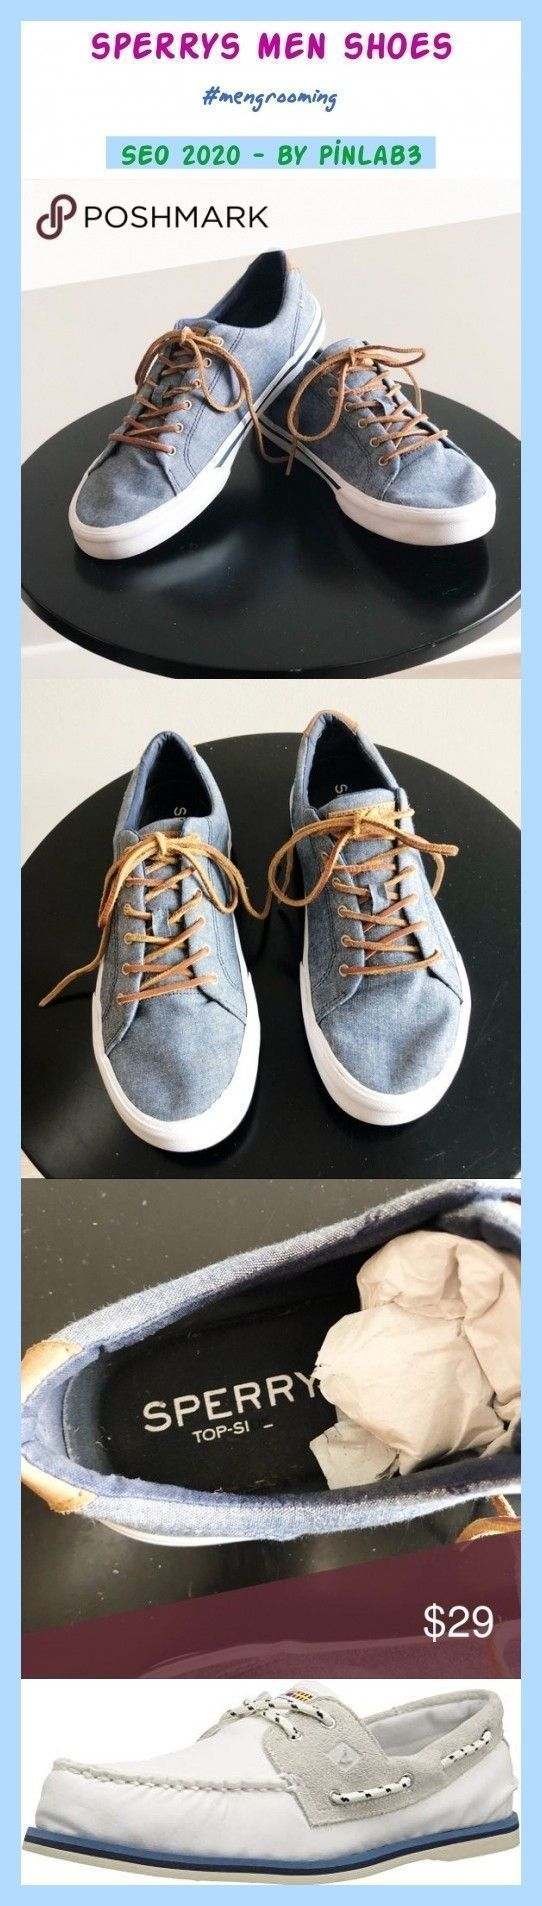 Photo of Haarprodukte #sperry #shoes sperry Herrenschuhe, sperrys Herren Outfit Sommer, sper …